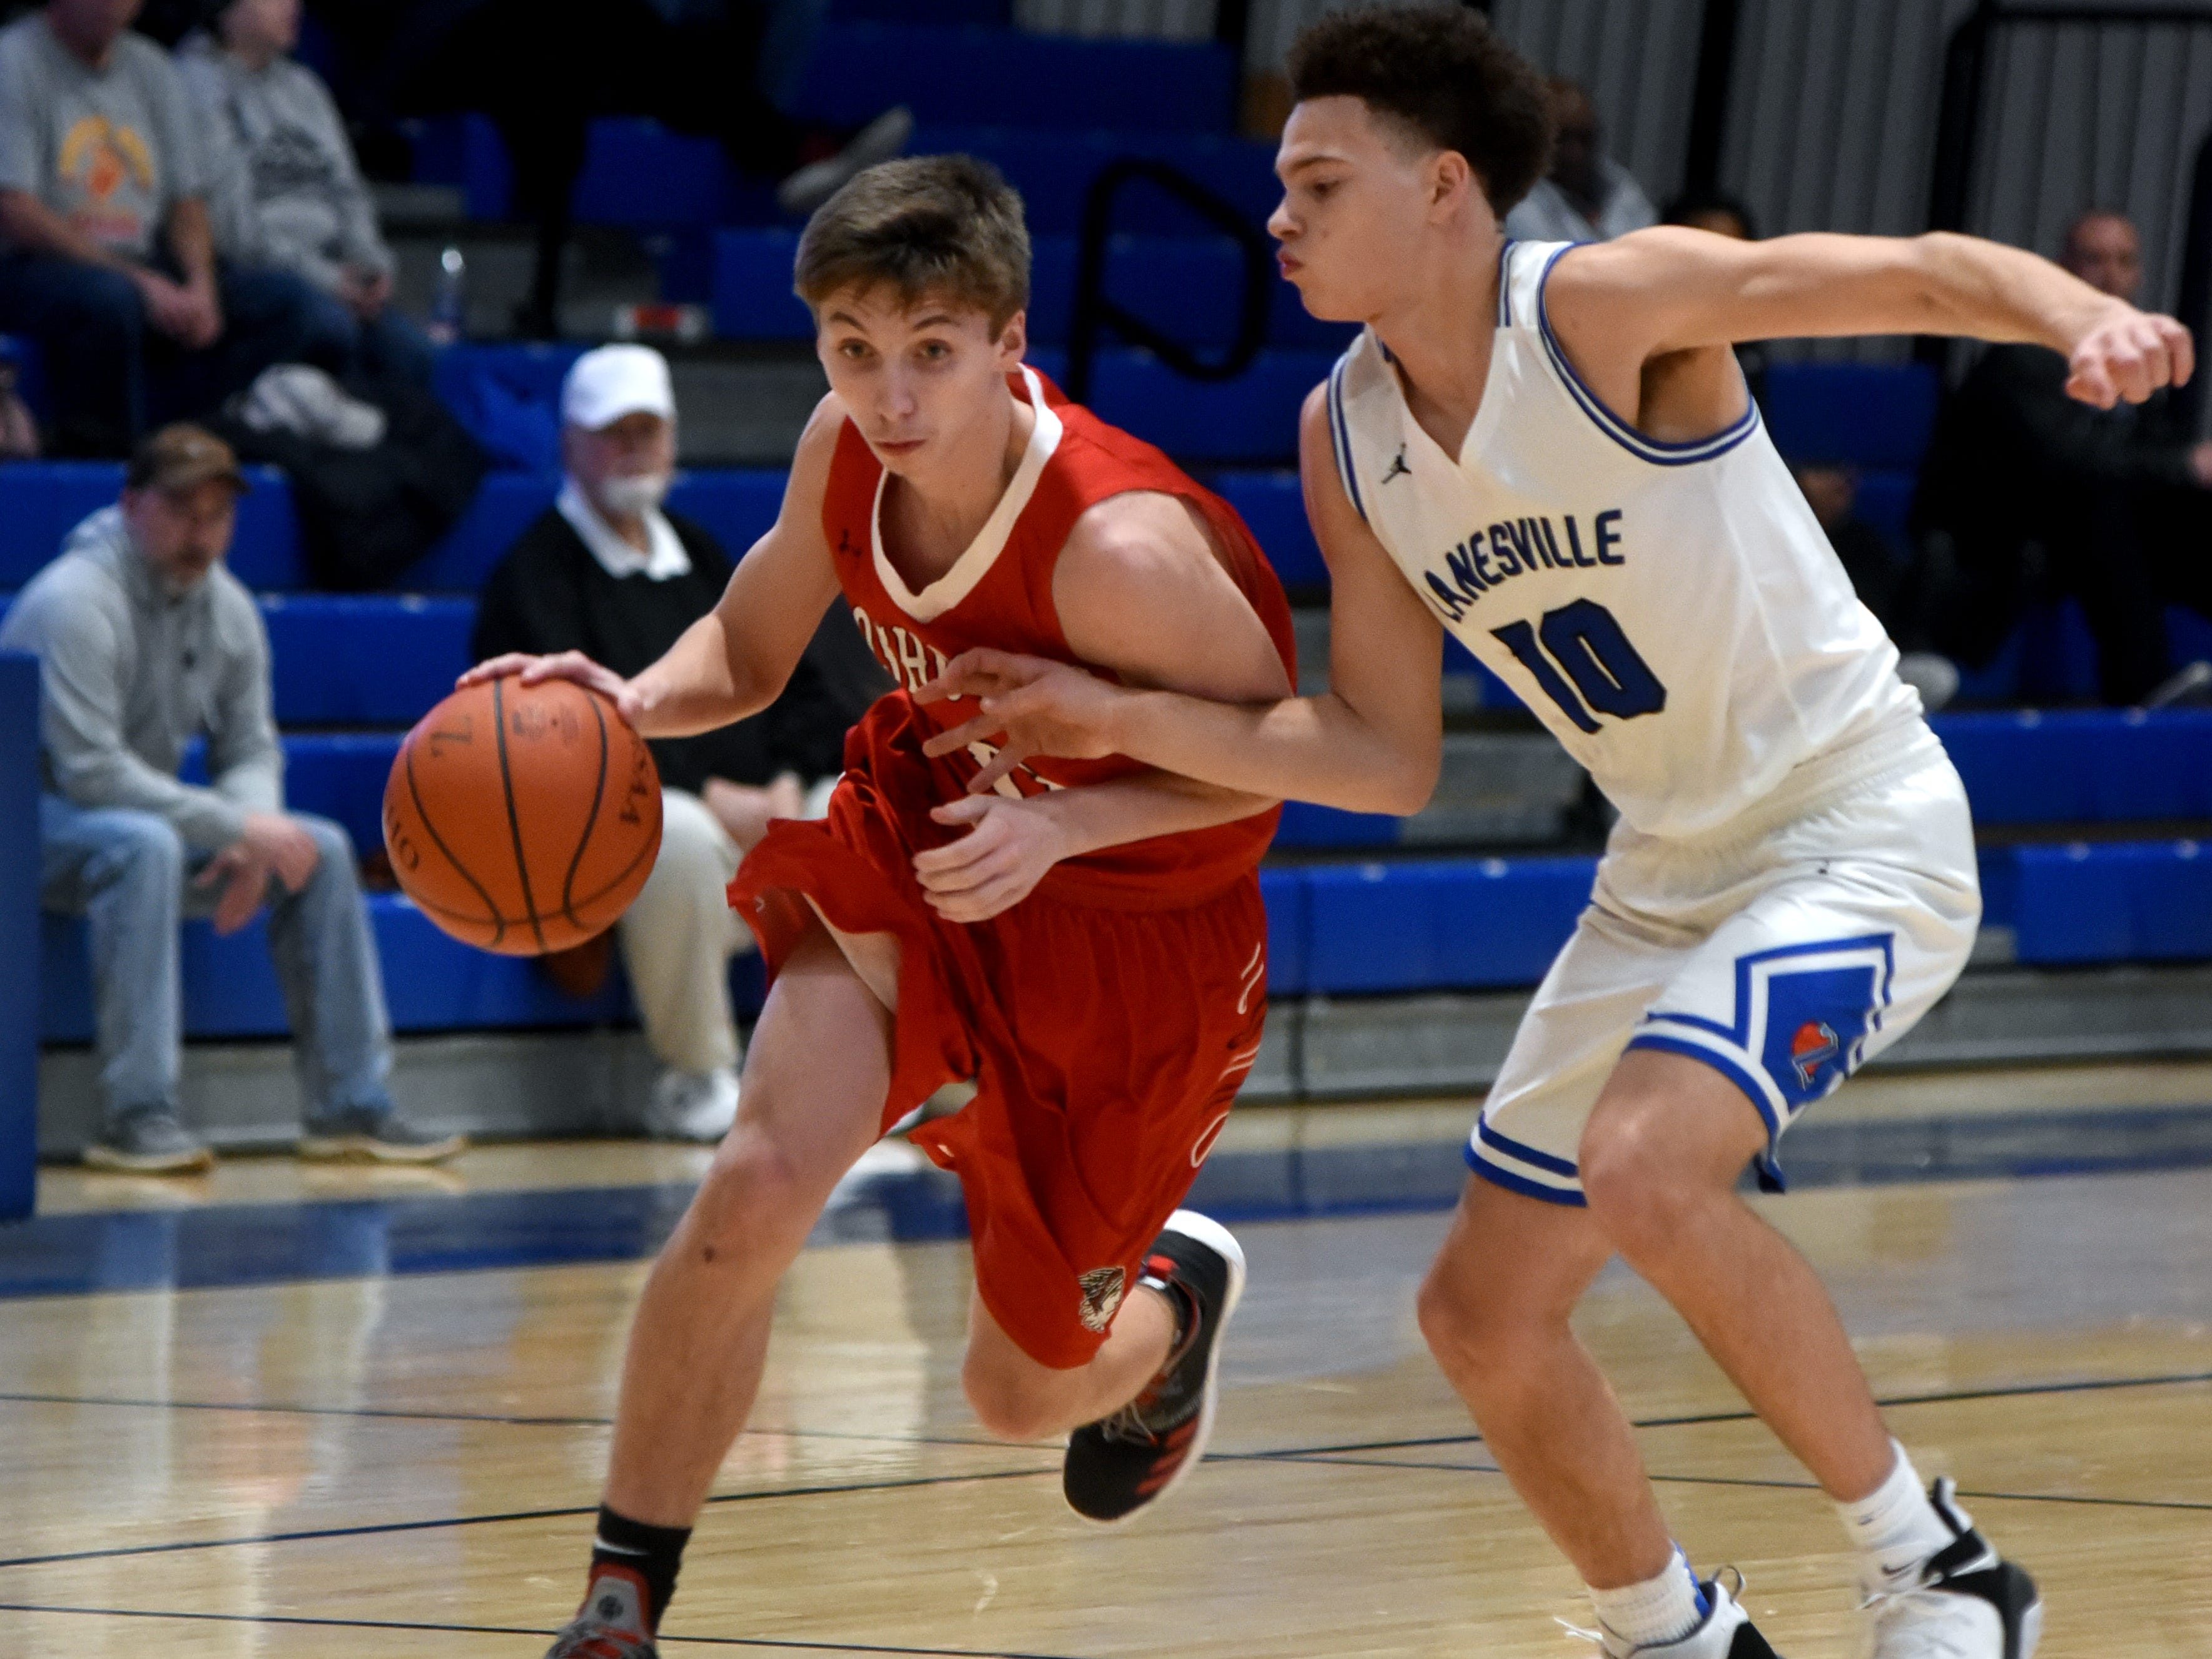 Gaven Williams, of Coshocton, drives up court against Zanesville's Kaleb Young.